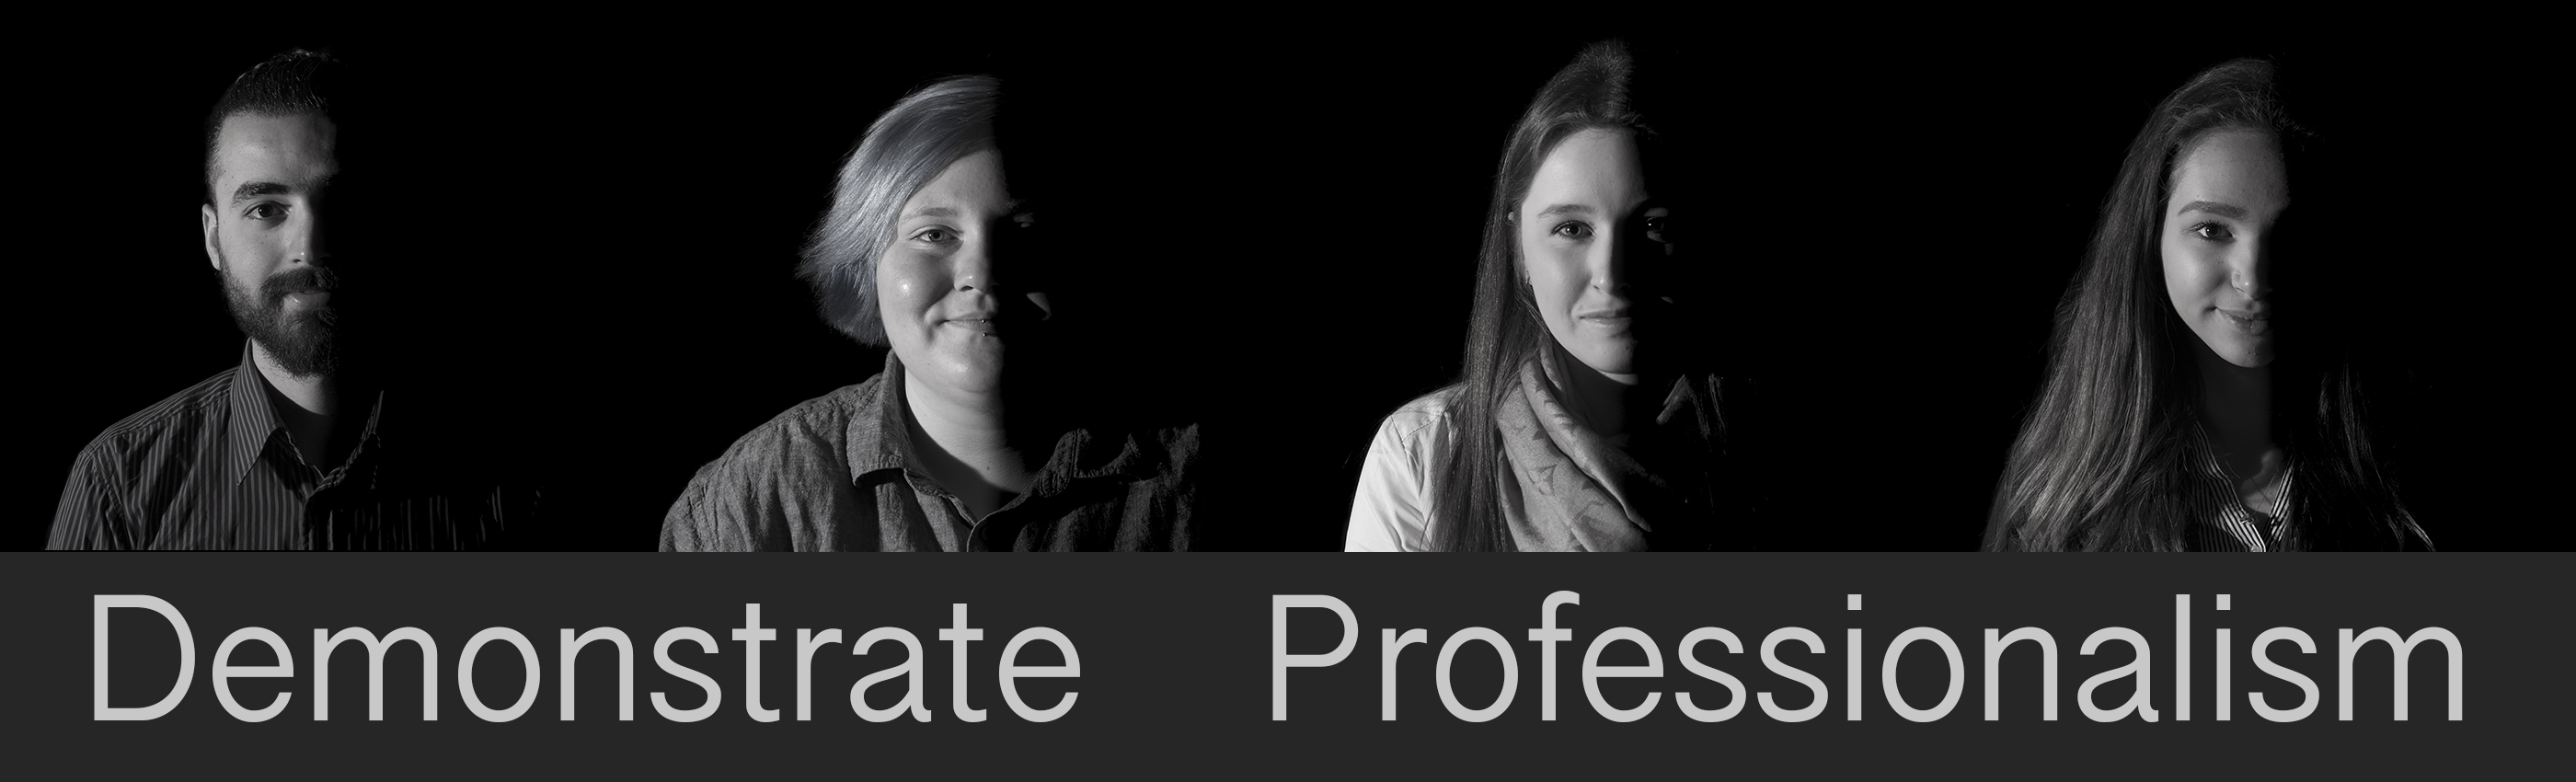 Demonstrate Professionalism Banner